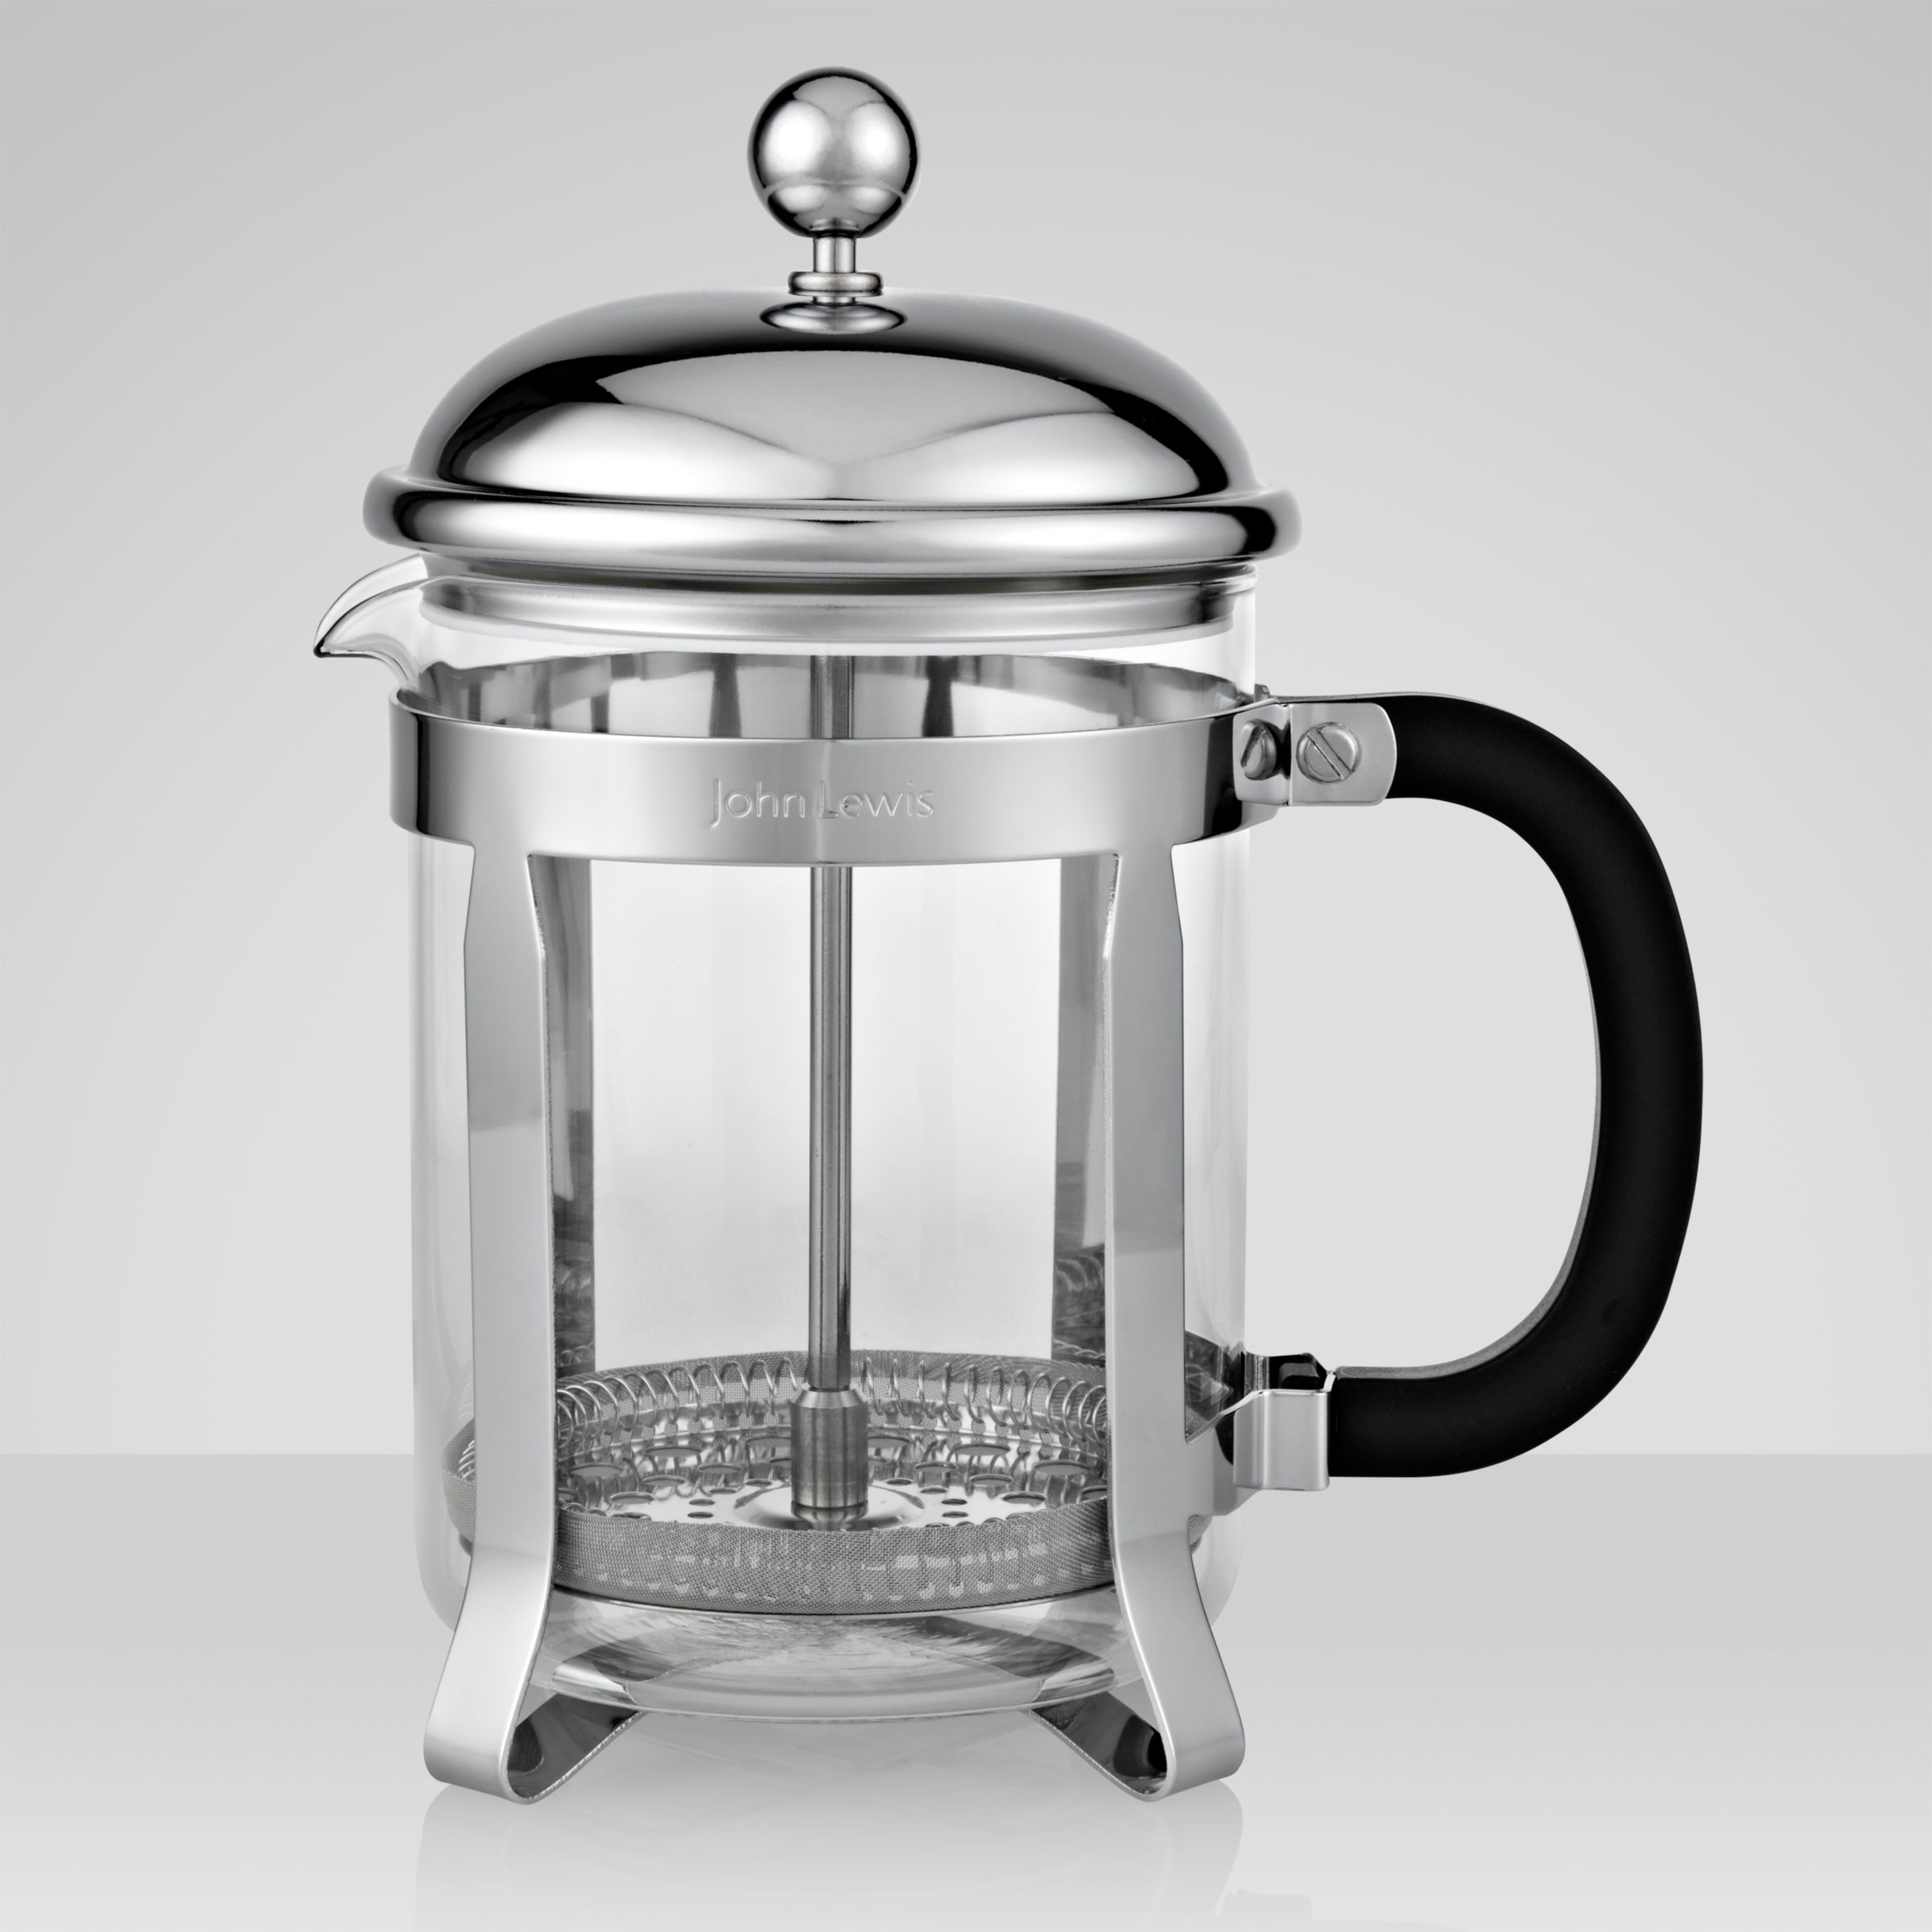 Italian Coffee Maker John Lewis : Buy John Lewis Classic French Press Cafetiere John Lewis